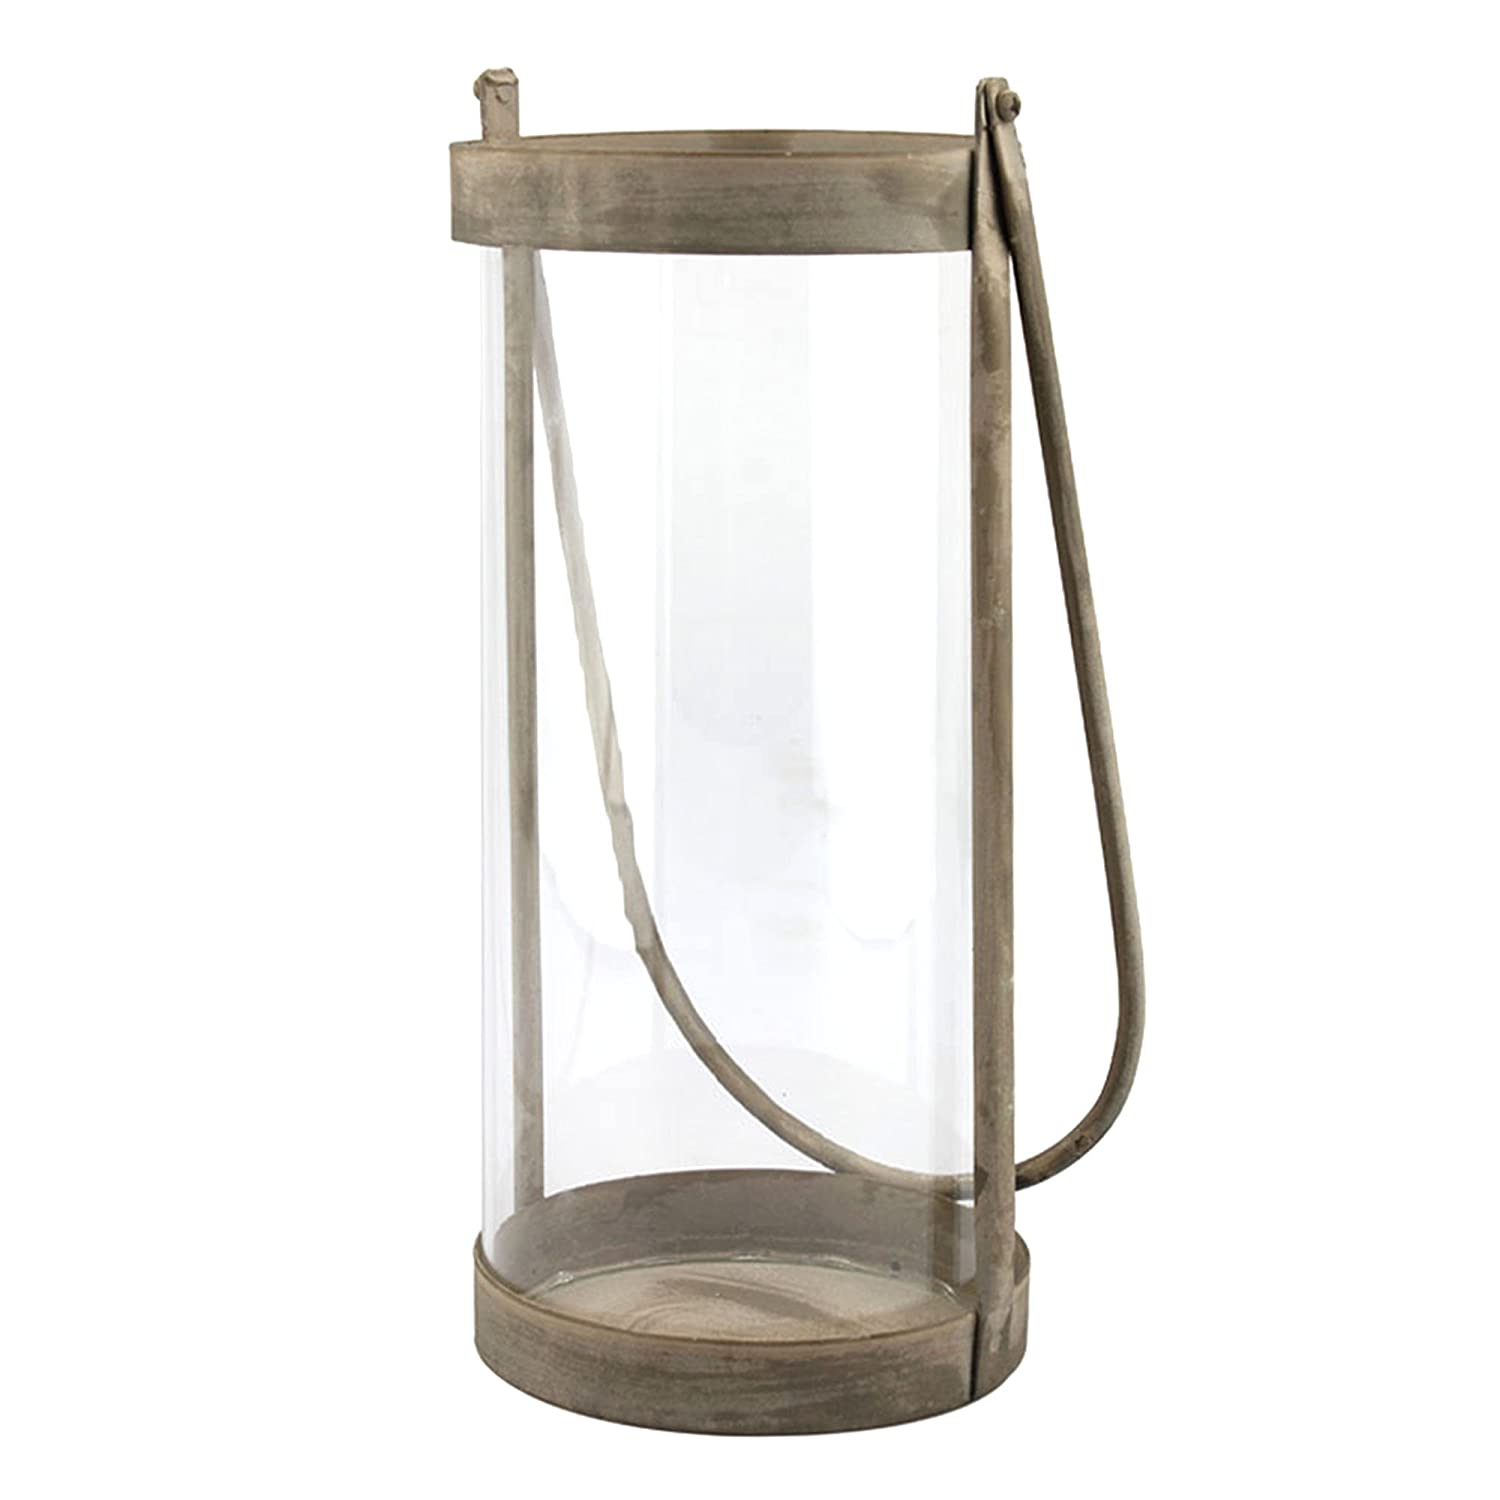 Stonebriar Industrial Glass Cylinder Hurricane Candle Lantern with Rustic Zinc Metal Frame and Handle, Decorative Home Decor Accents for Centerpiece, Mantel Decoration, or Relaxing Spa Atmosphere